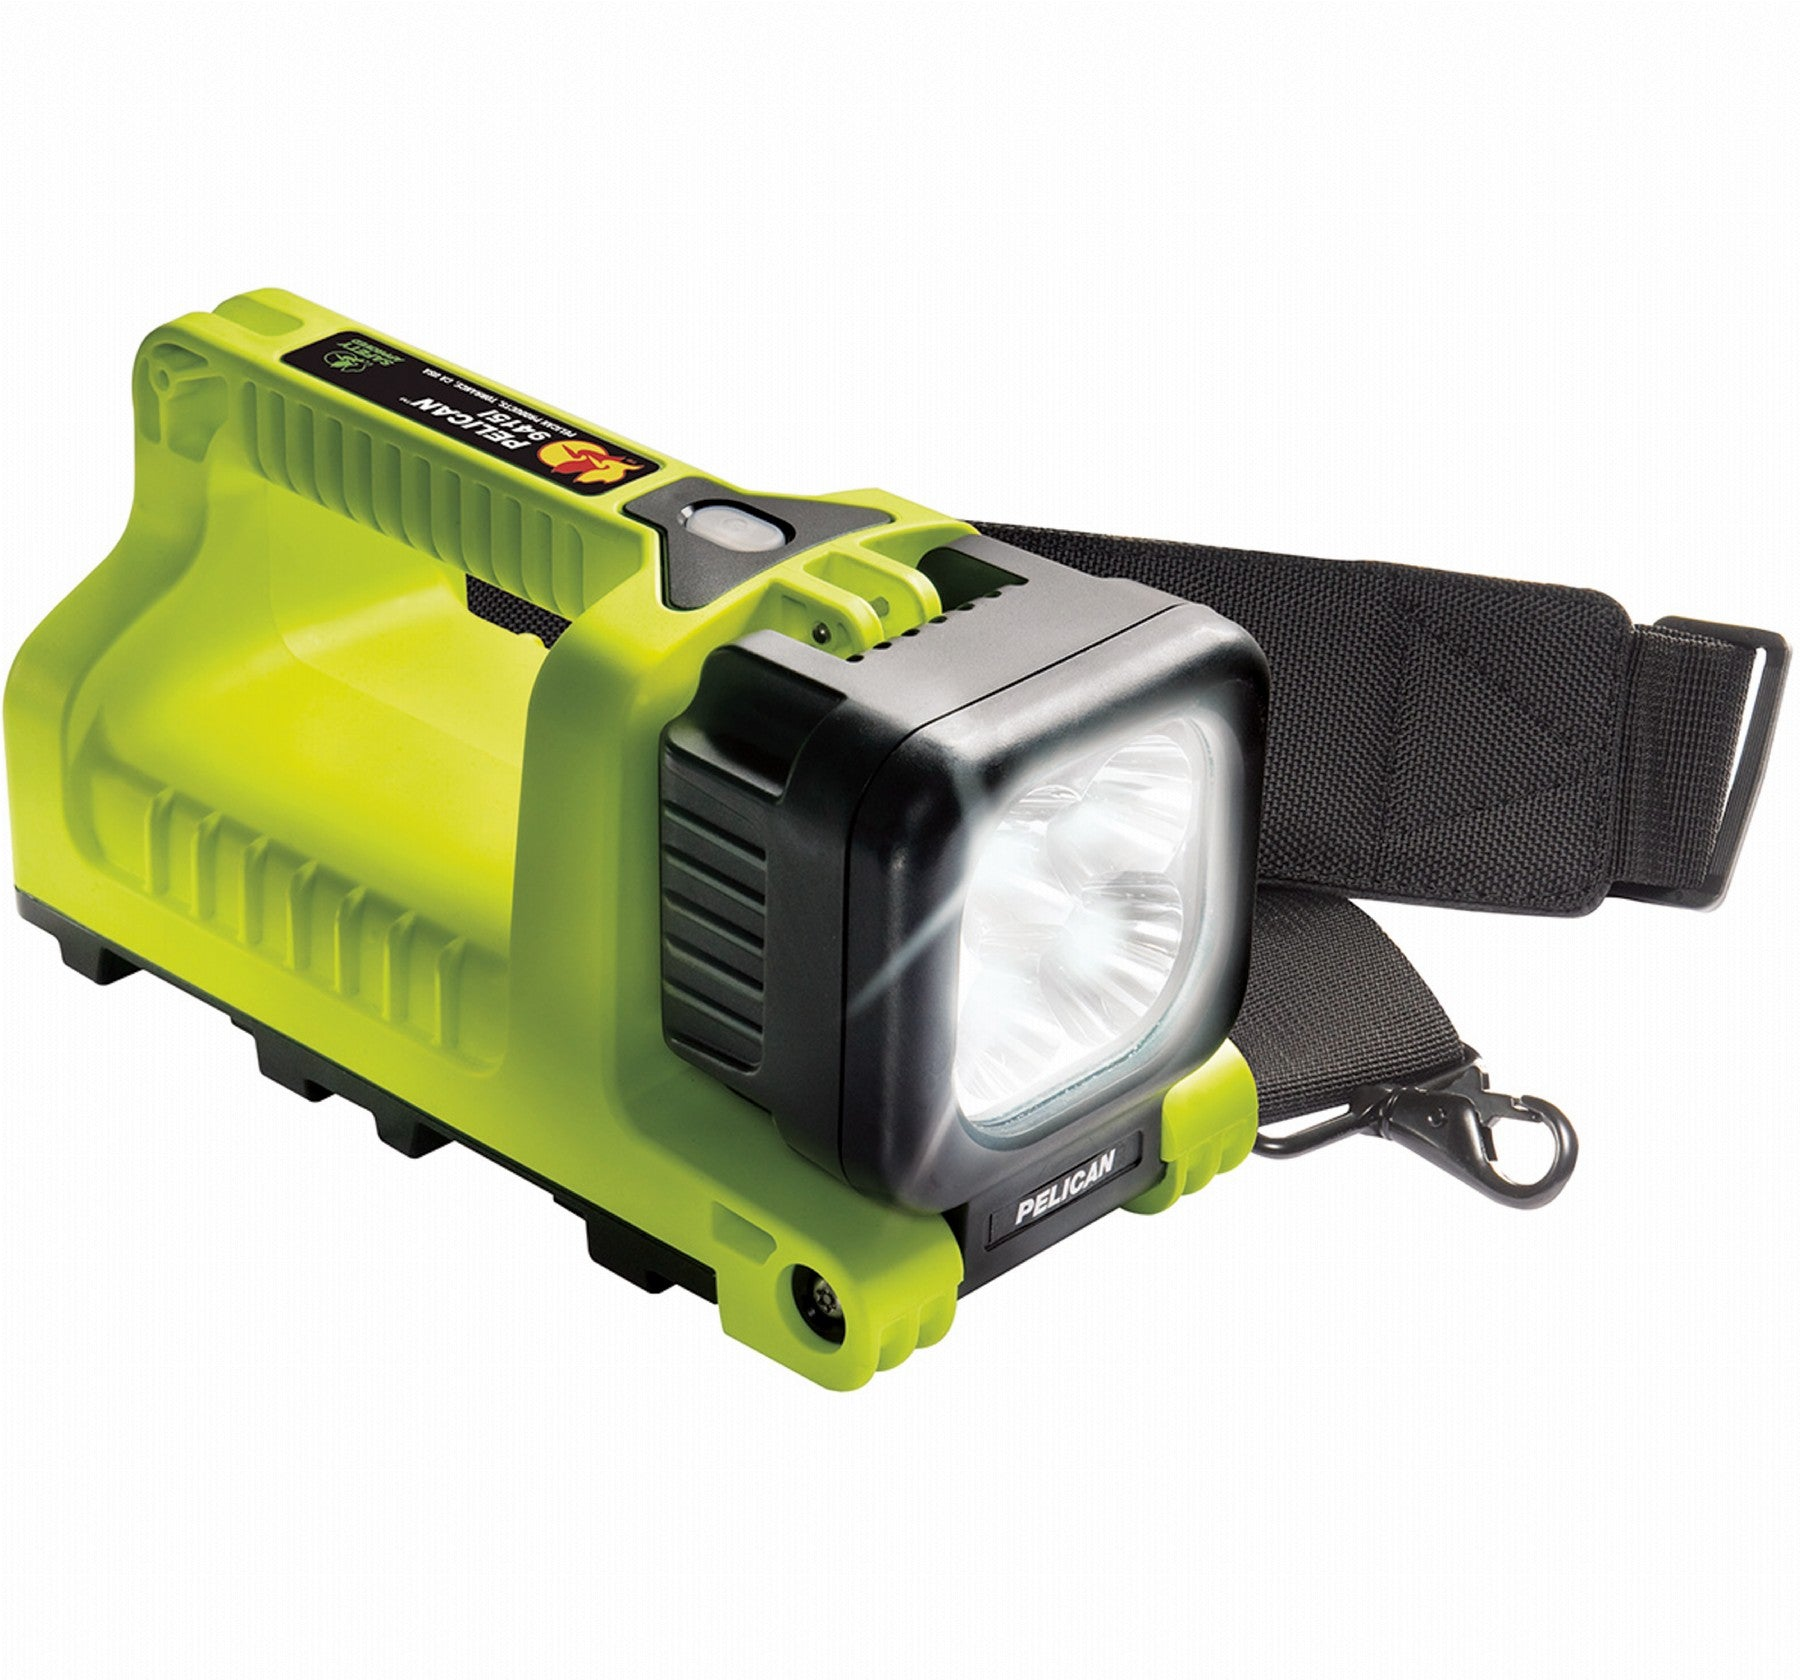 Pelican 9415i Industrial LED Lantern Intrinsically Safe with IECEx